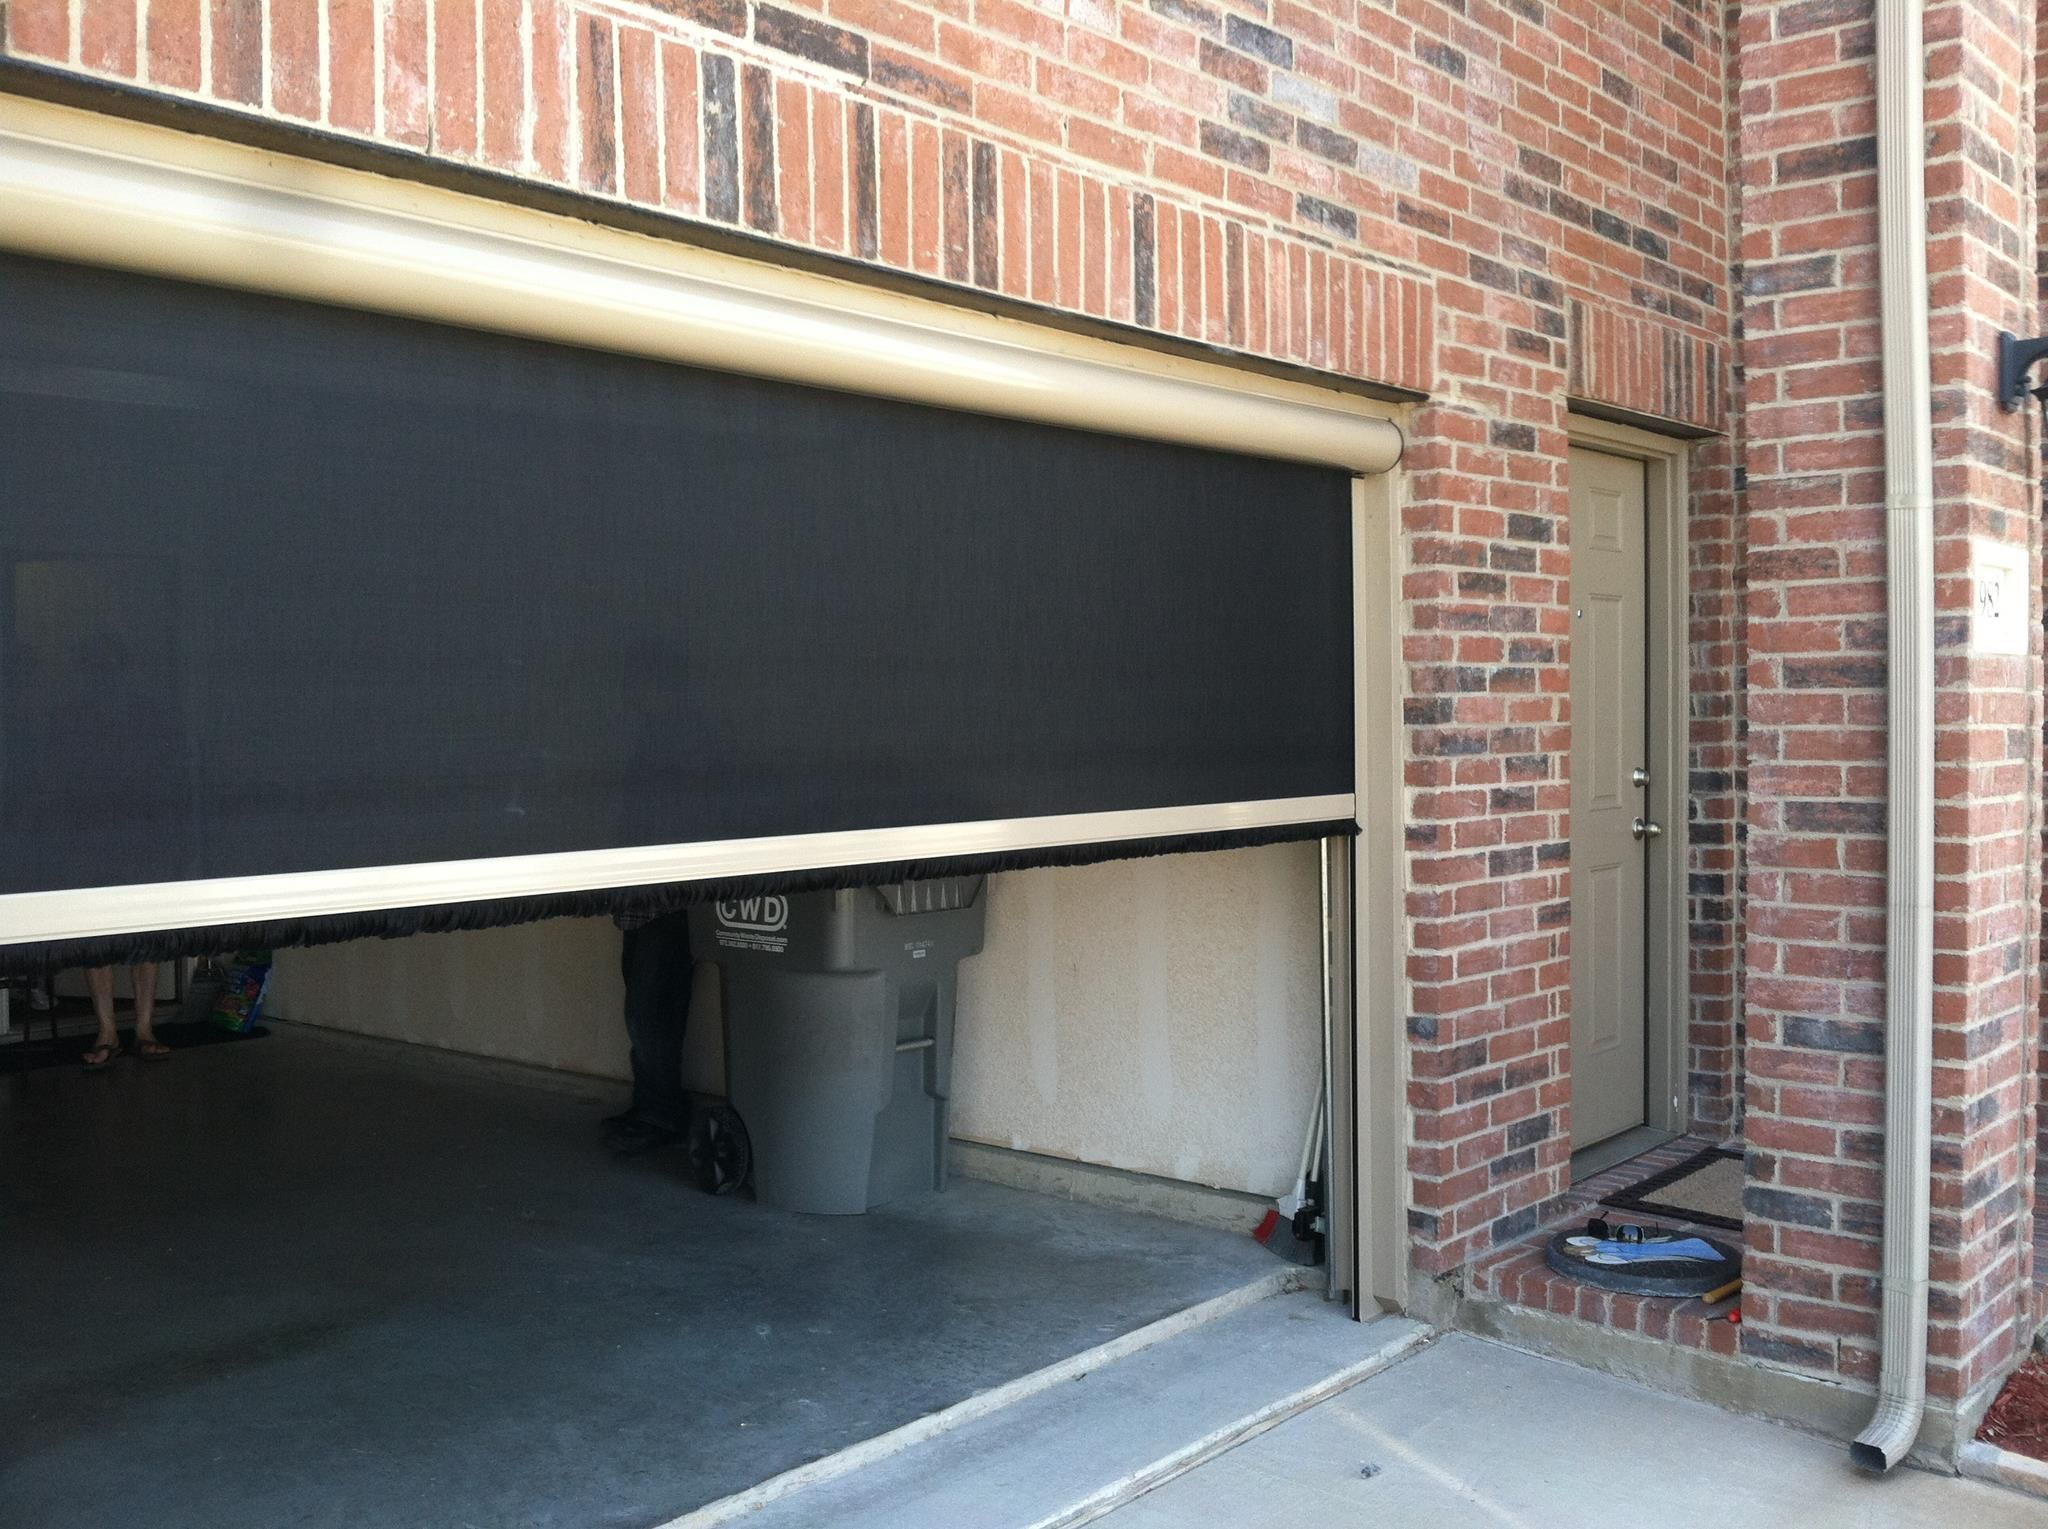 Motorized Retractable Screens To Enclose A Garage Area Use Your Garage To Work On Your Car And Keep It Free Screen Door Garage Screen Door Retractable Screen